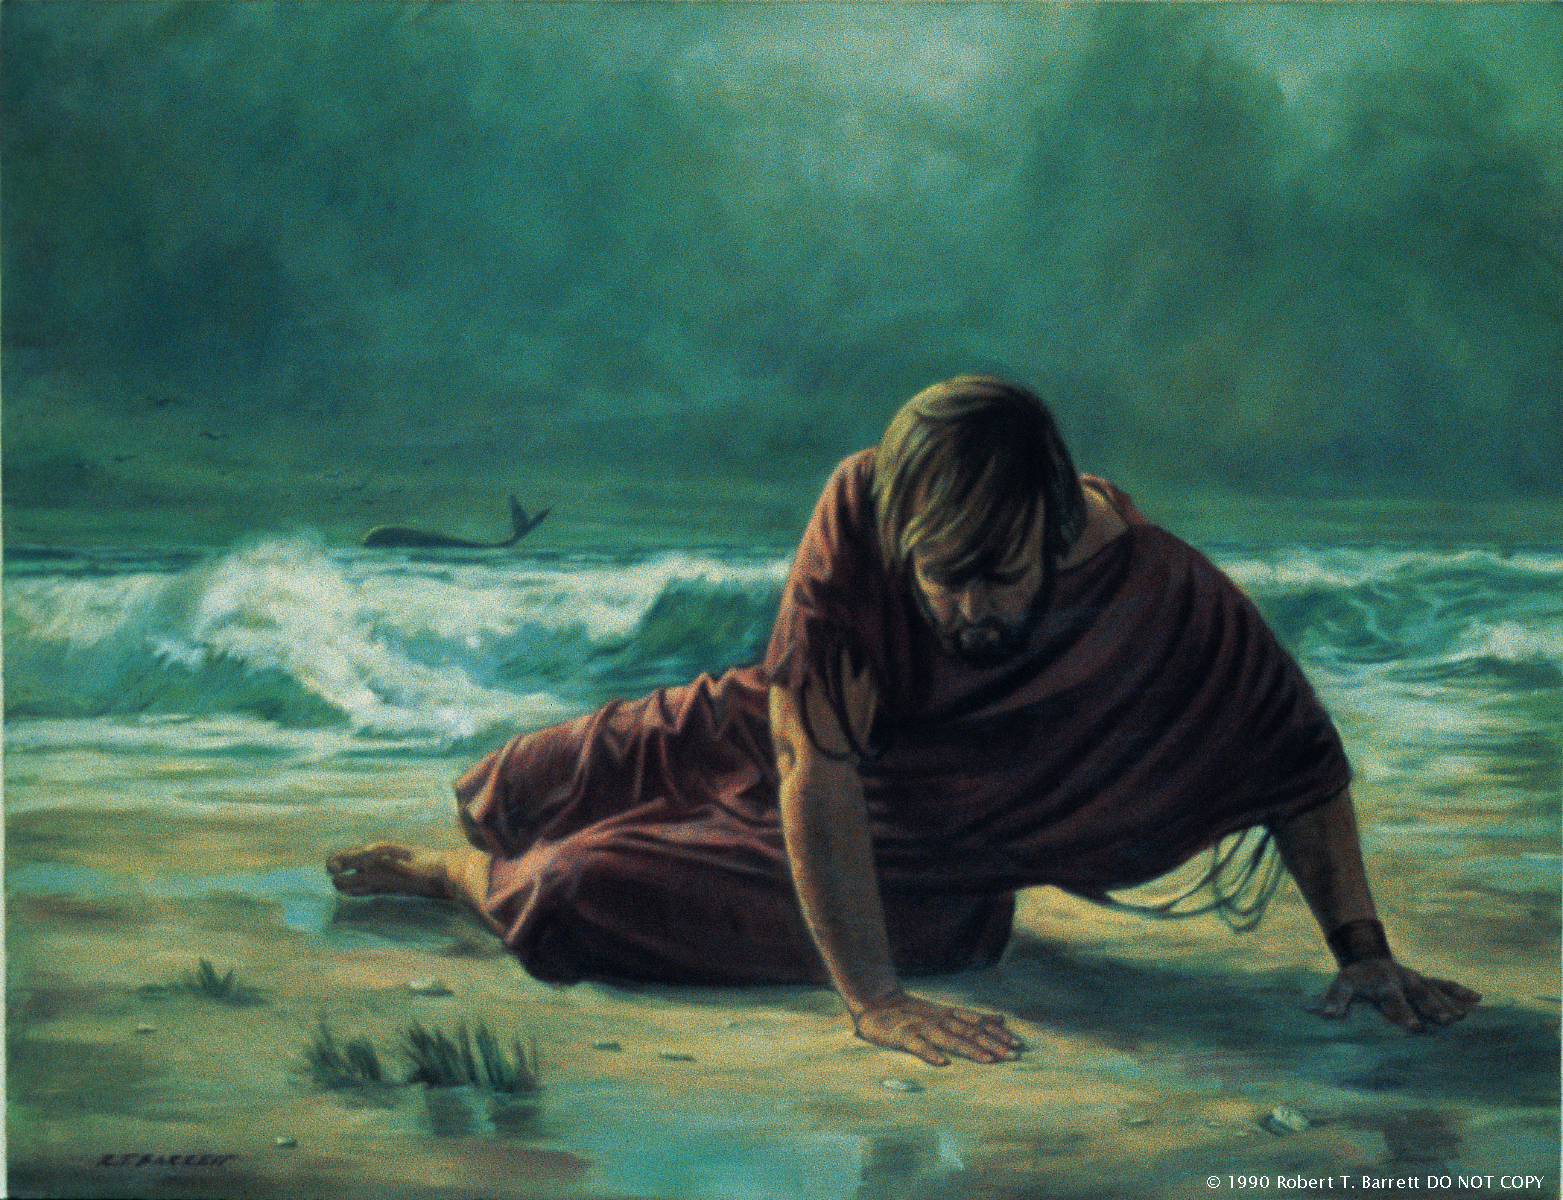 A painting by Robert T. Barrett showing Jonah in a ragged red robe lying on a beach with the silhouette of a whale seen in the distance.